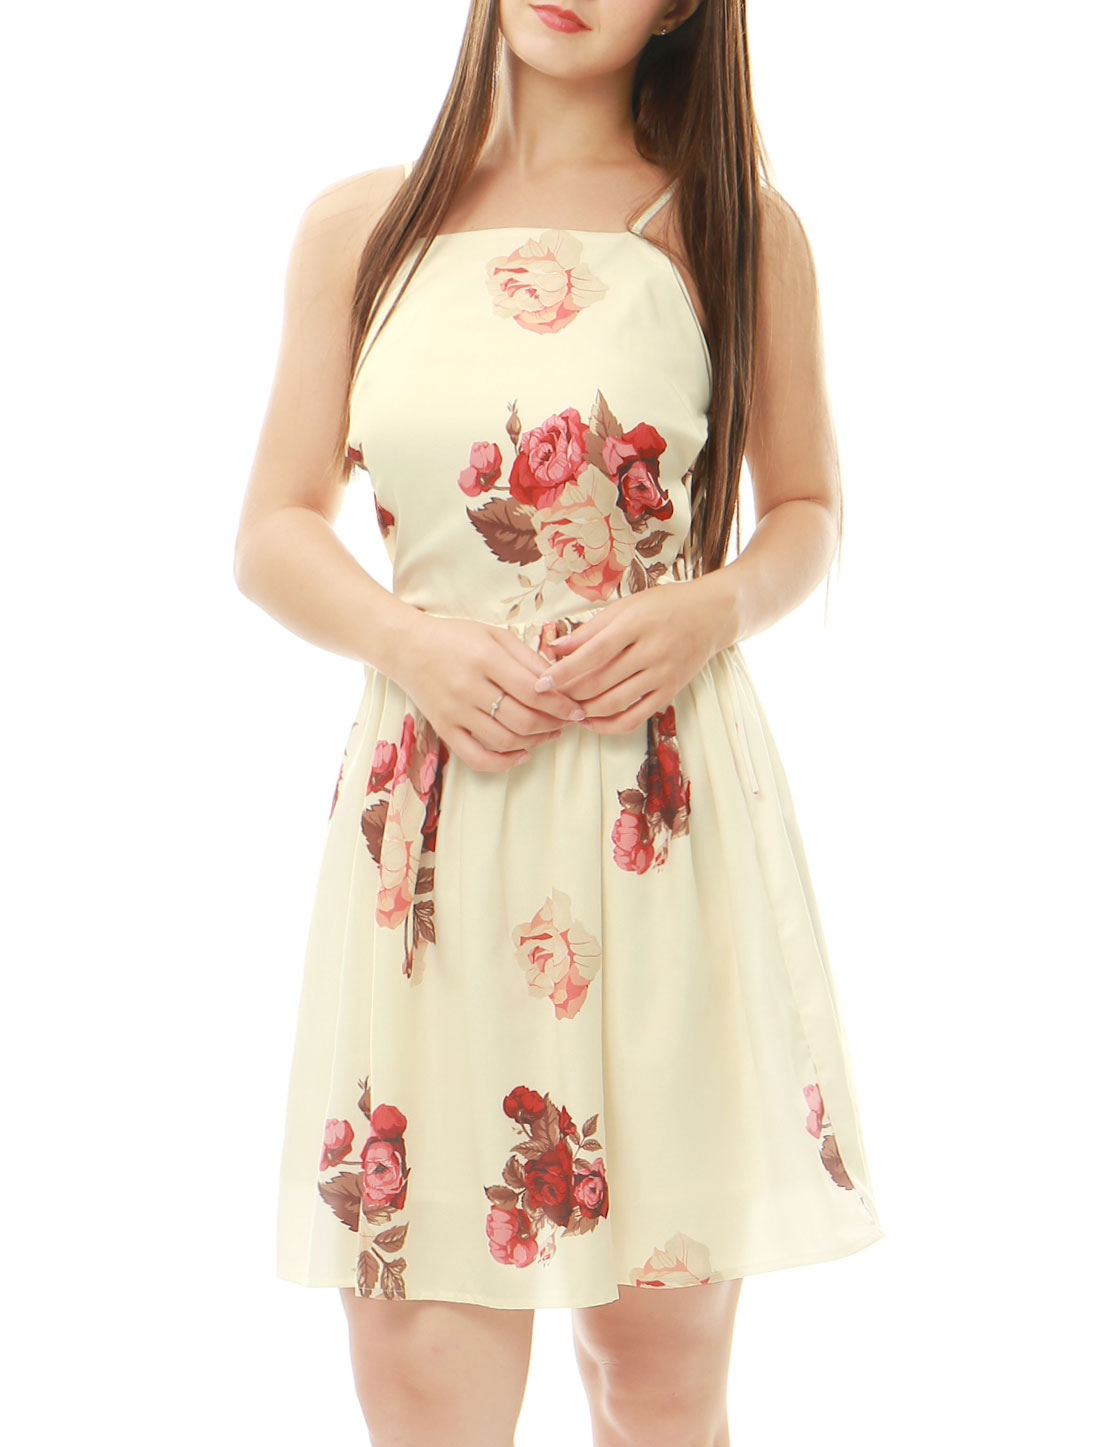 Women Floral Prints Sleeveless Tie Side A Line Dress Beige M